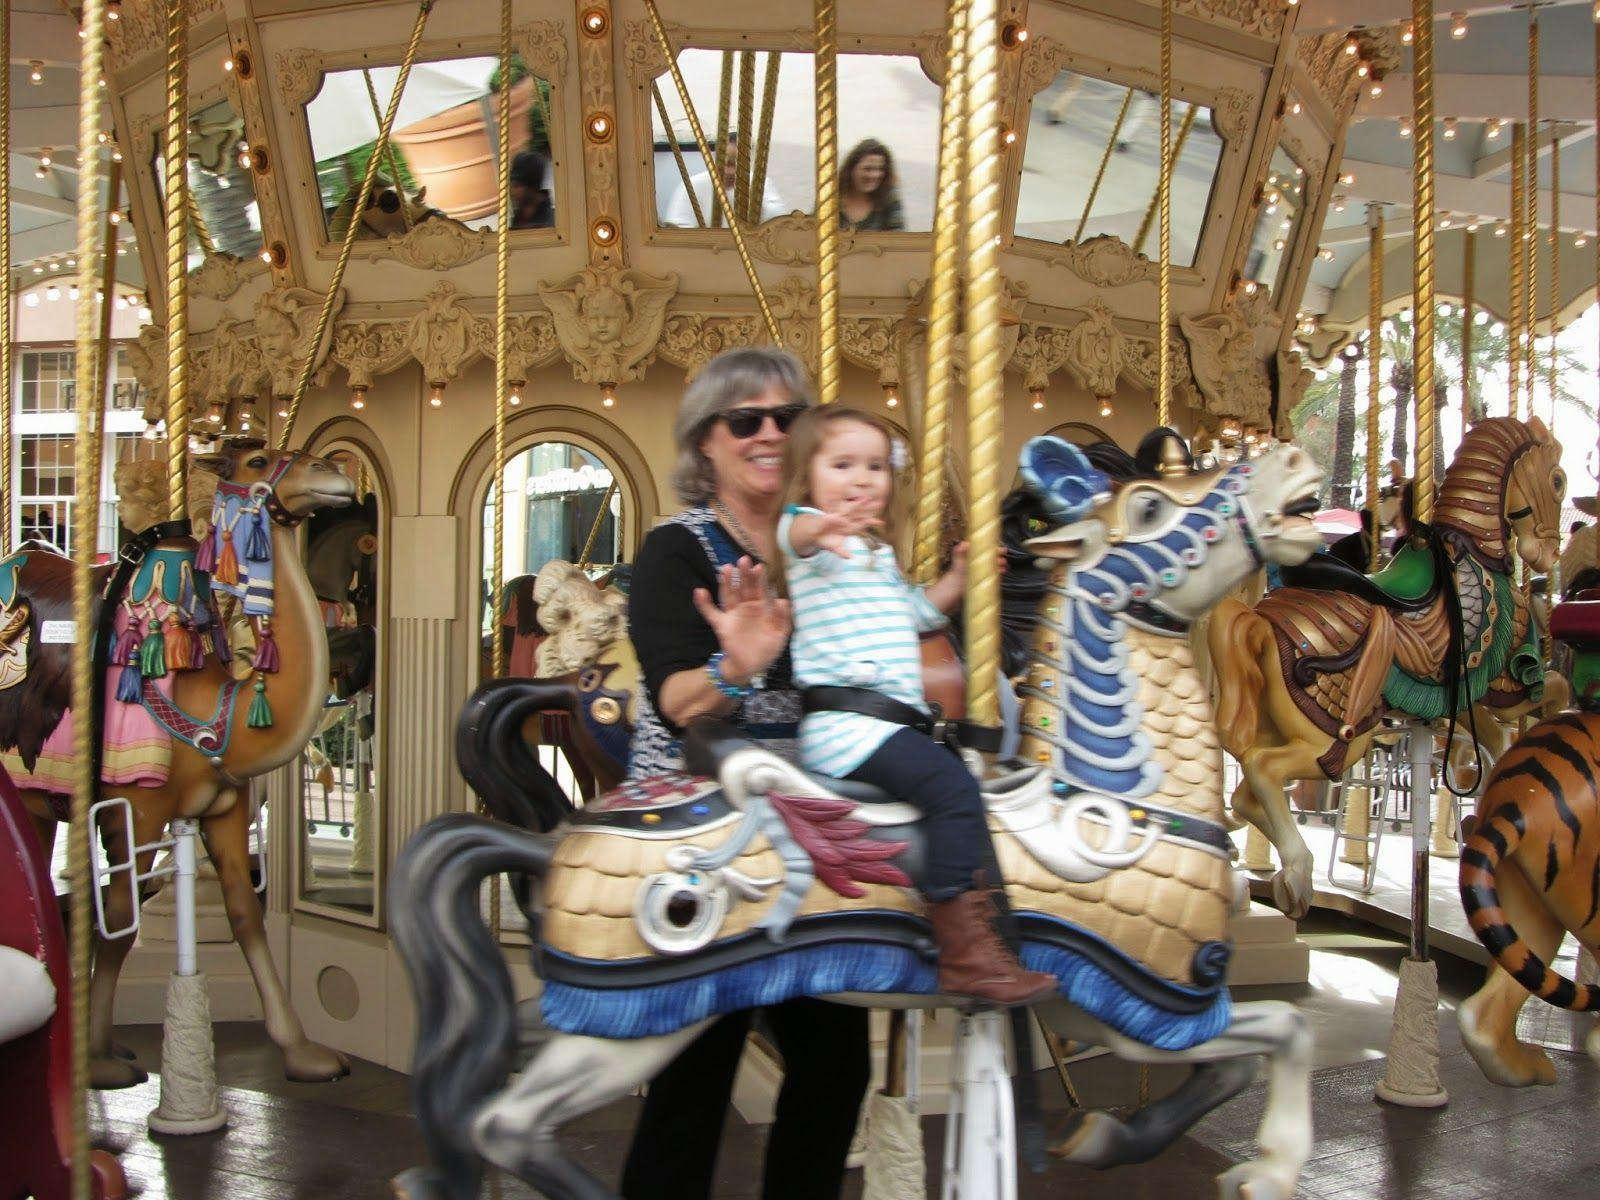 Merry go round Wallpapers 2015 1600x1200